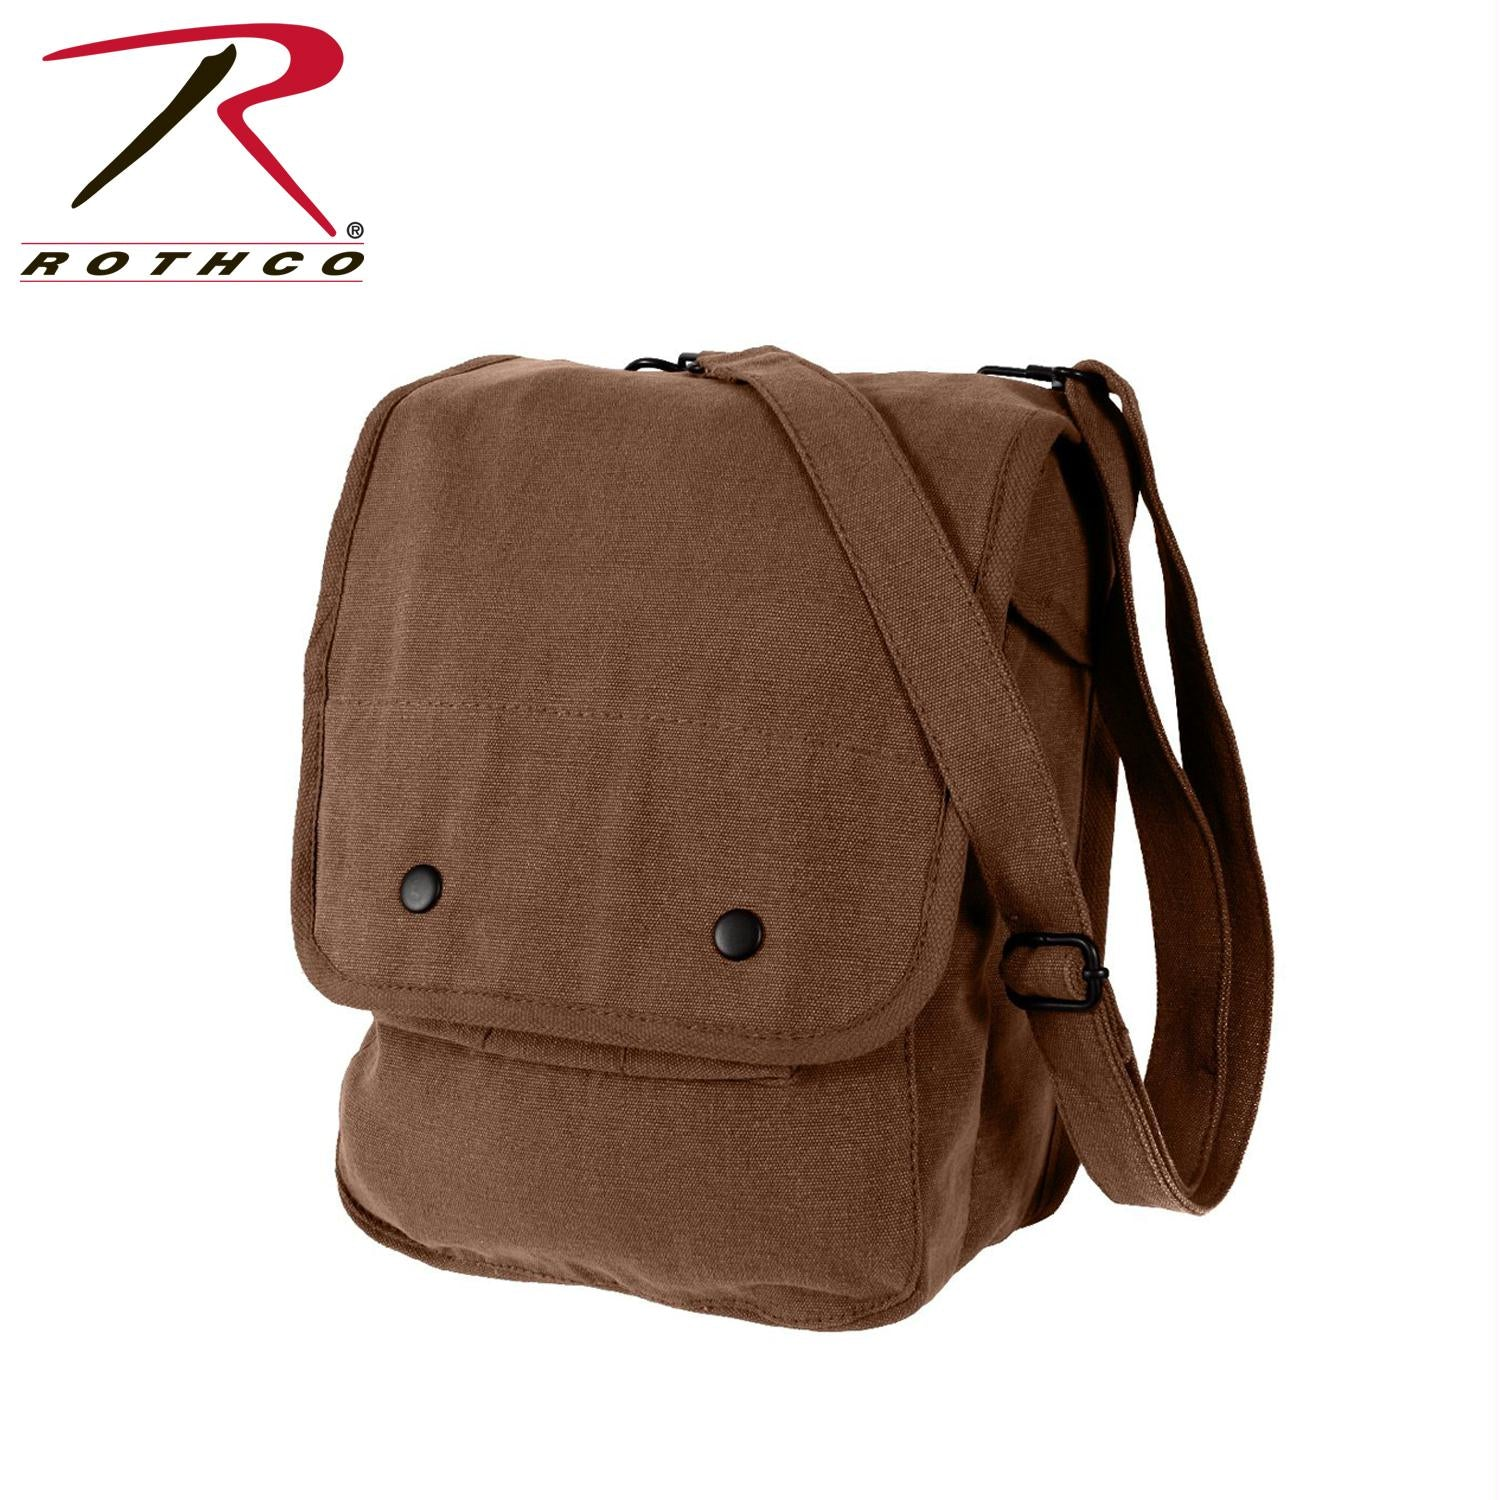 Rothco Canvas Map Case Shoulder Bag - Earth Brown